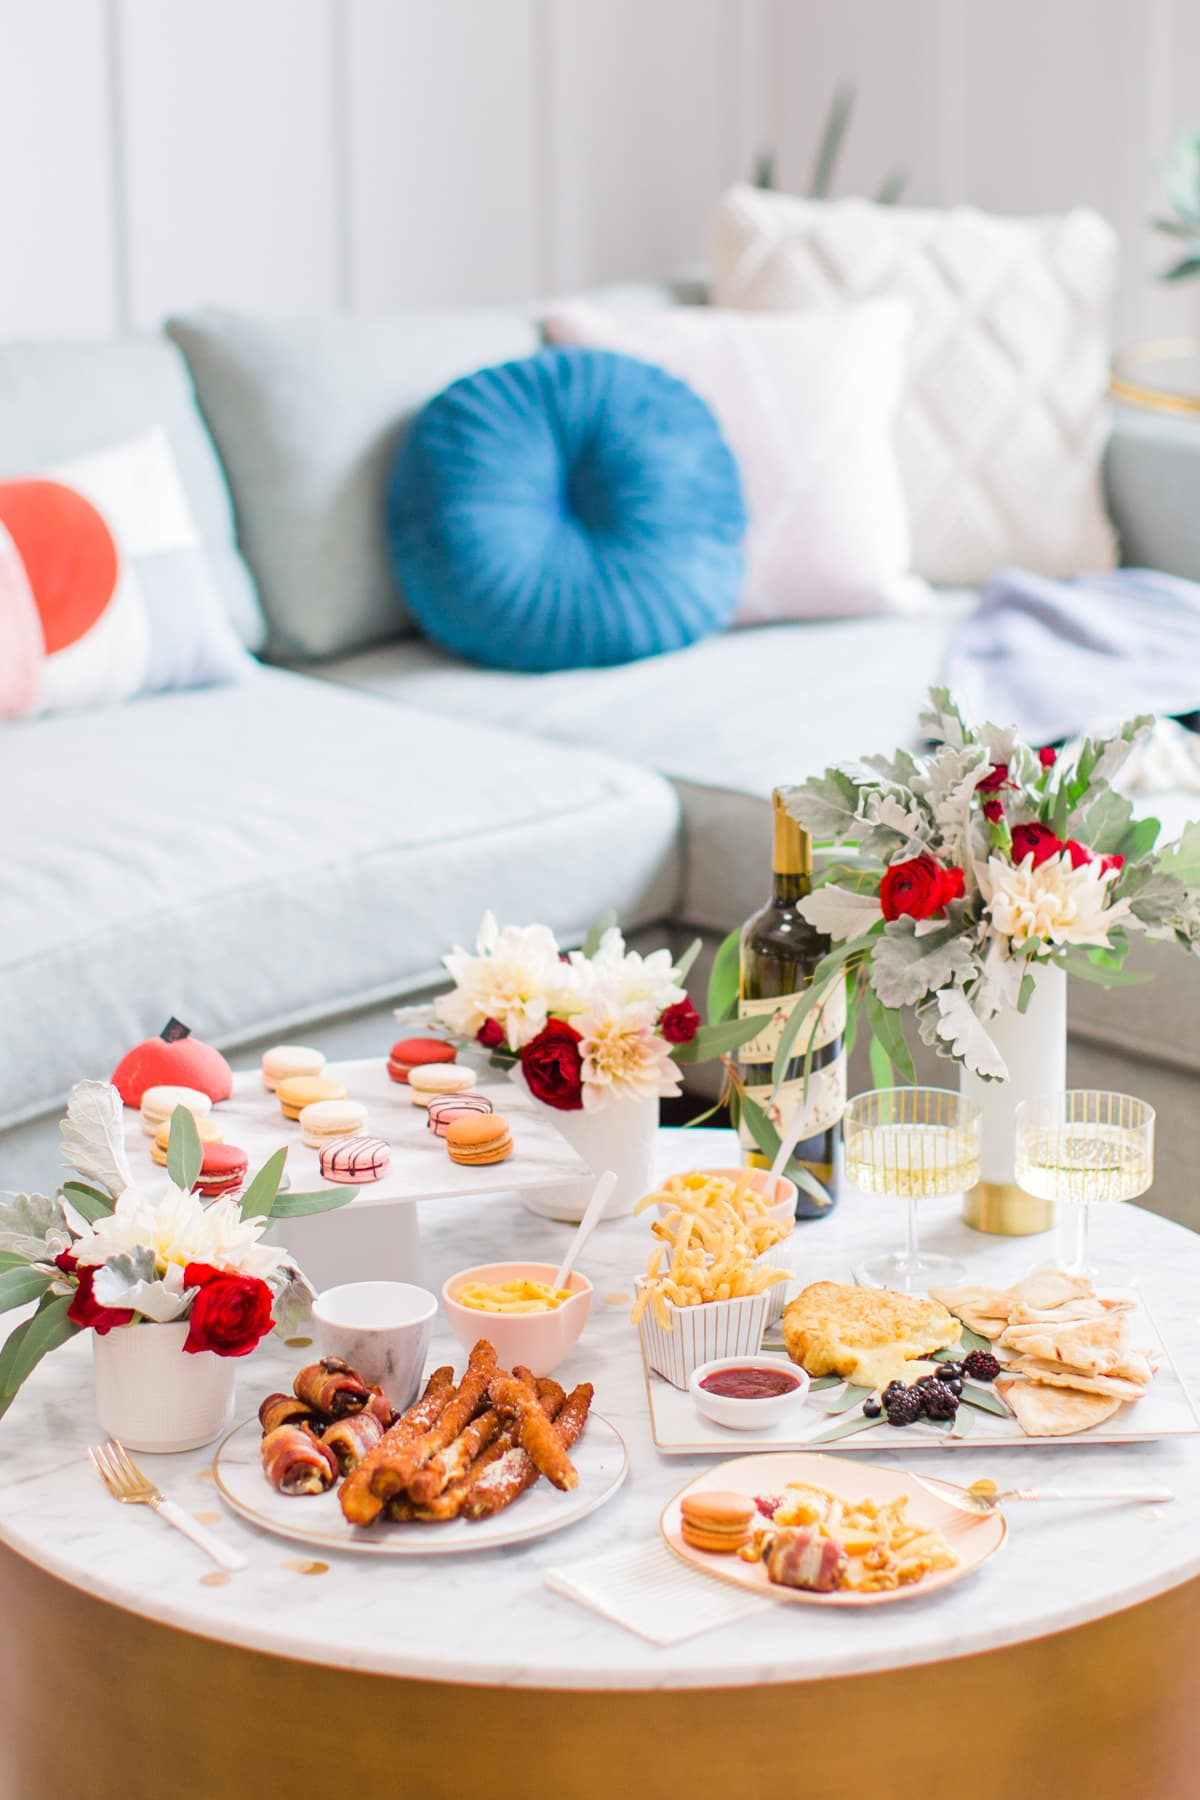 Ideas for Hosting An Oscars Party at Home Without Even Cooking by top Houston lifestyle blogger Ashley Rose of Sugar & Cloth